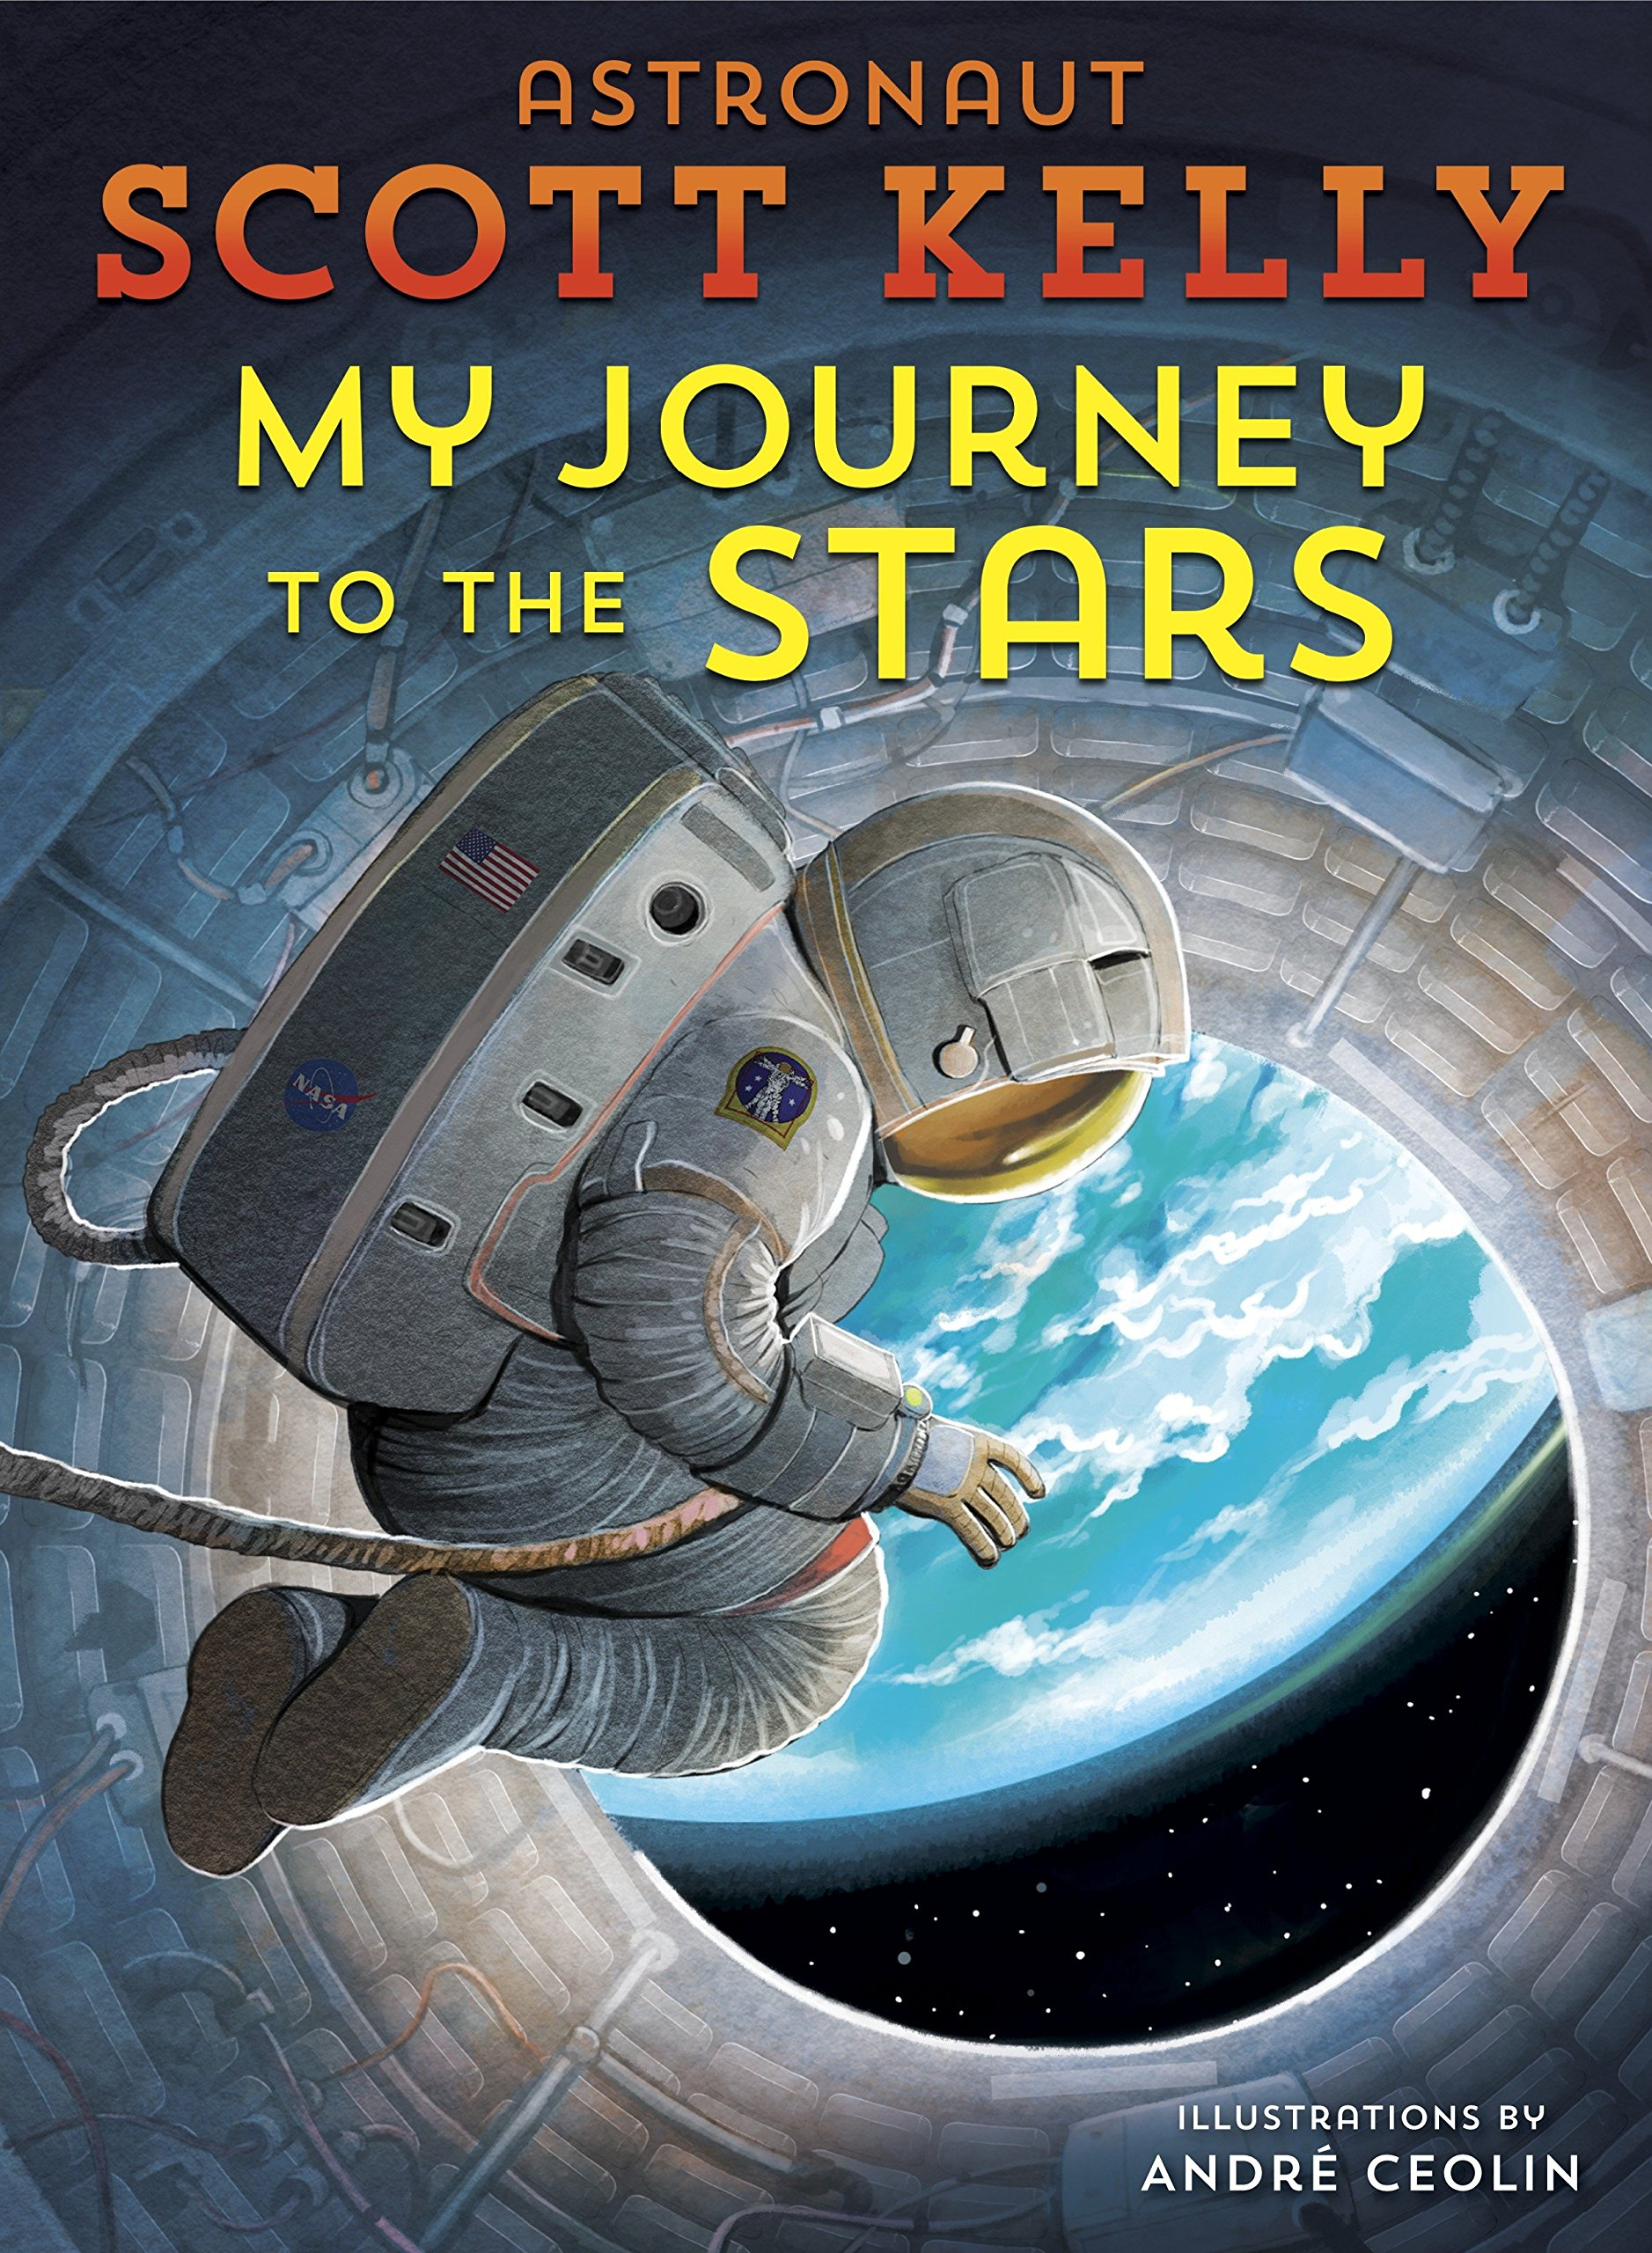 BLAST OFF with Parent/Child Book Group